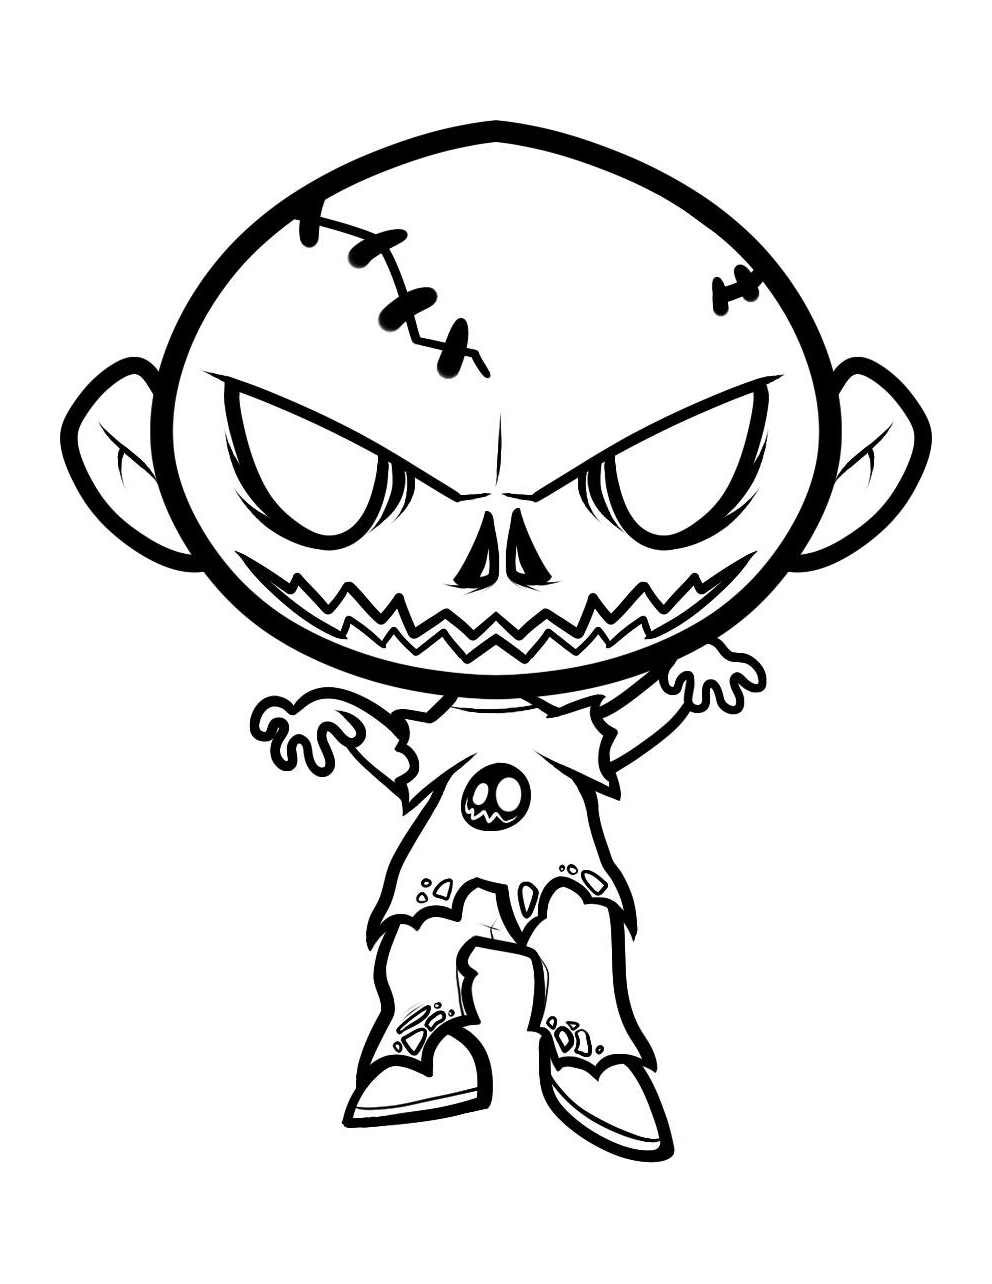 Dessin Halloween Zombie.Zombie 85544 Characters Printable Coloring Pages